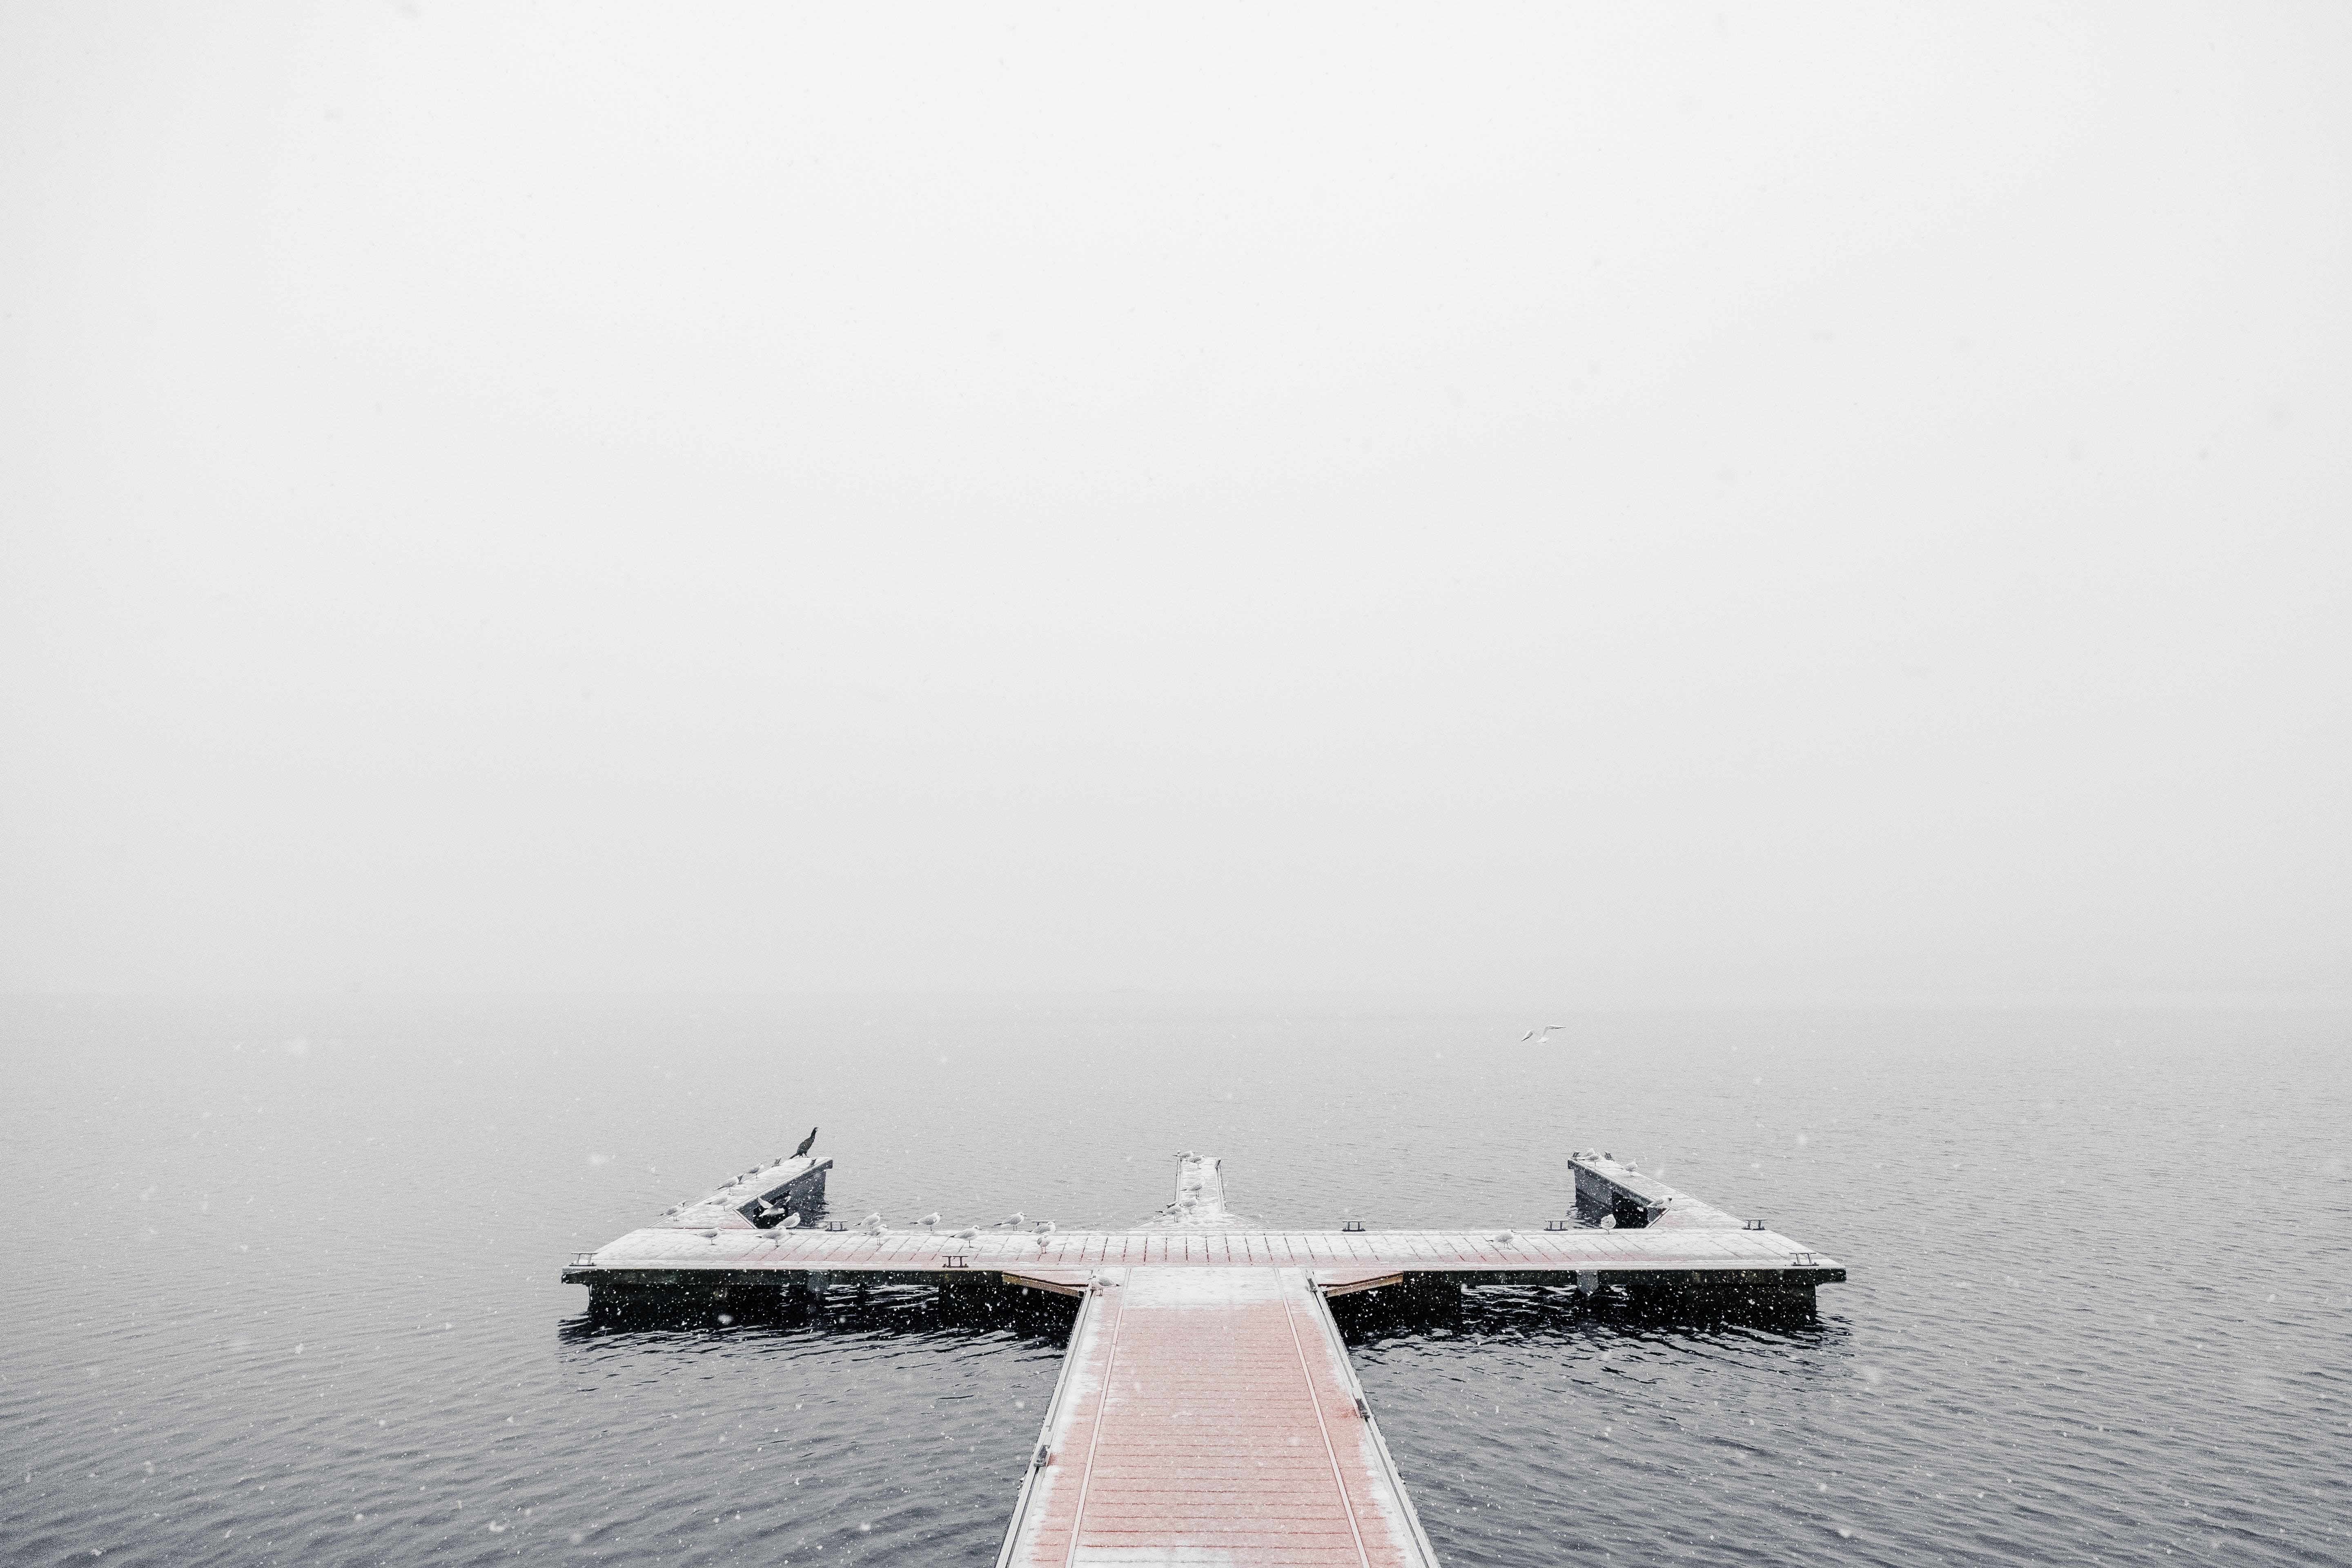 Dock Covered in Fog